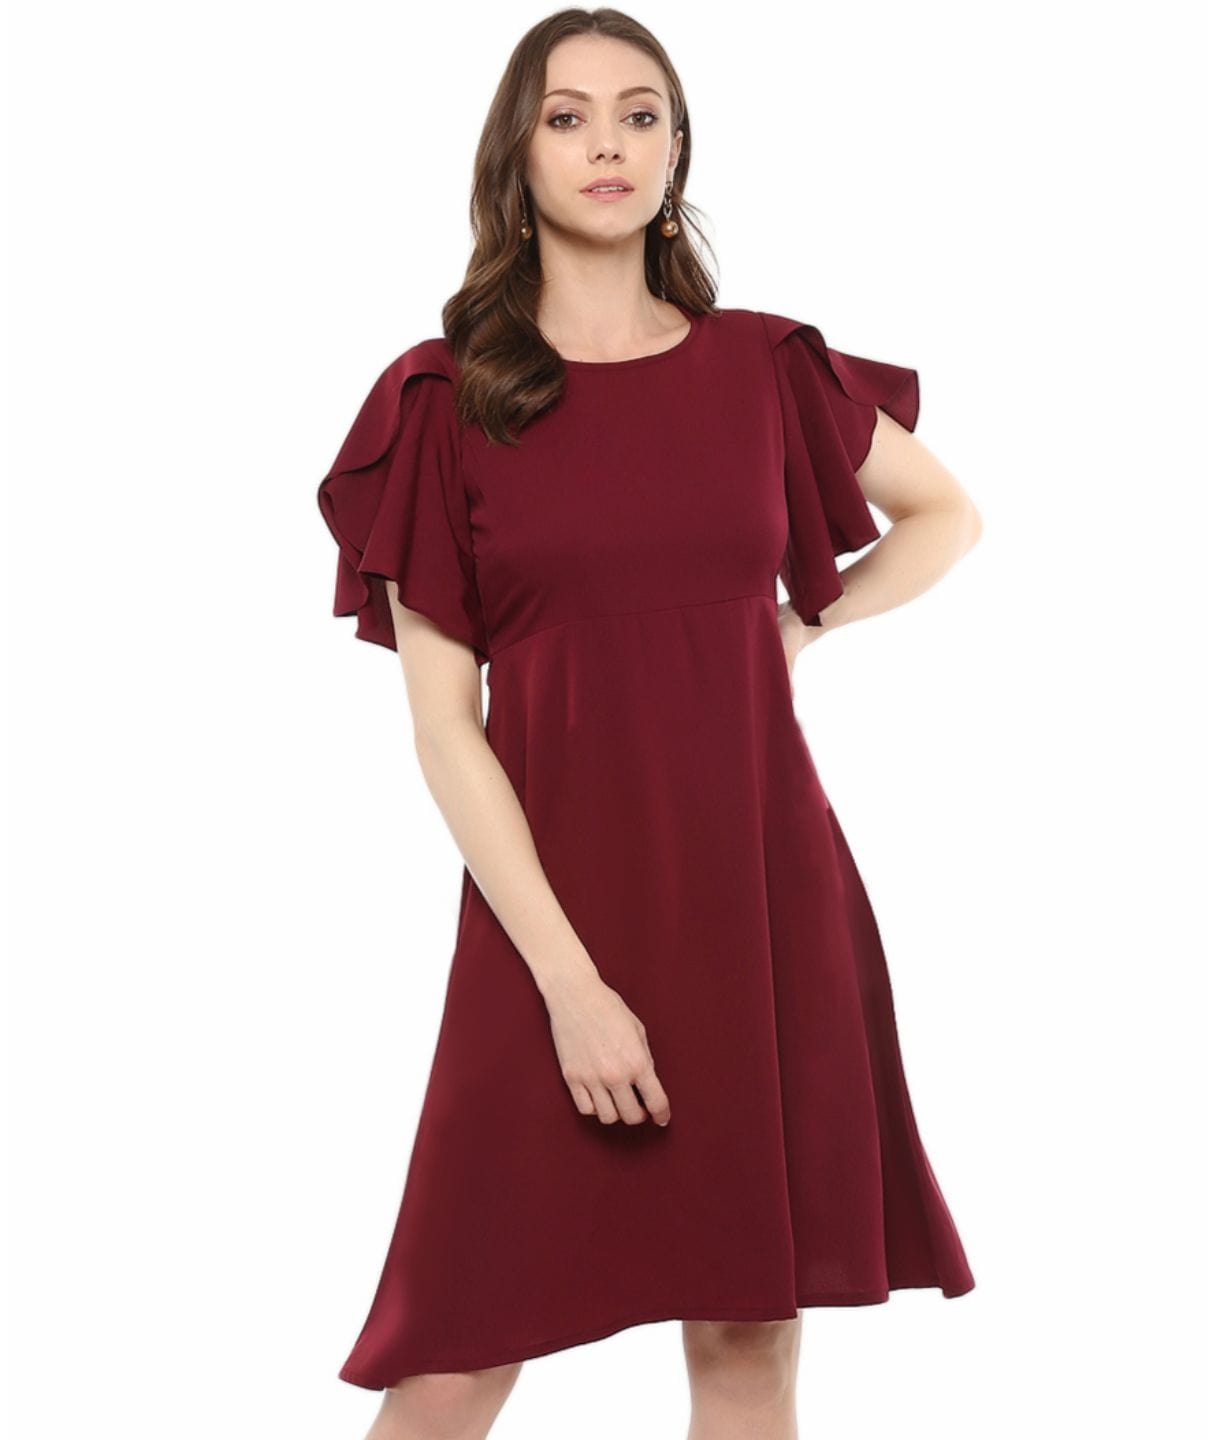 Solid Ruffle Sleeves Fit and Flare Crepe Skater Dress